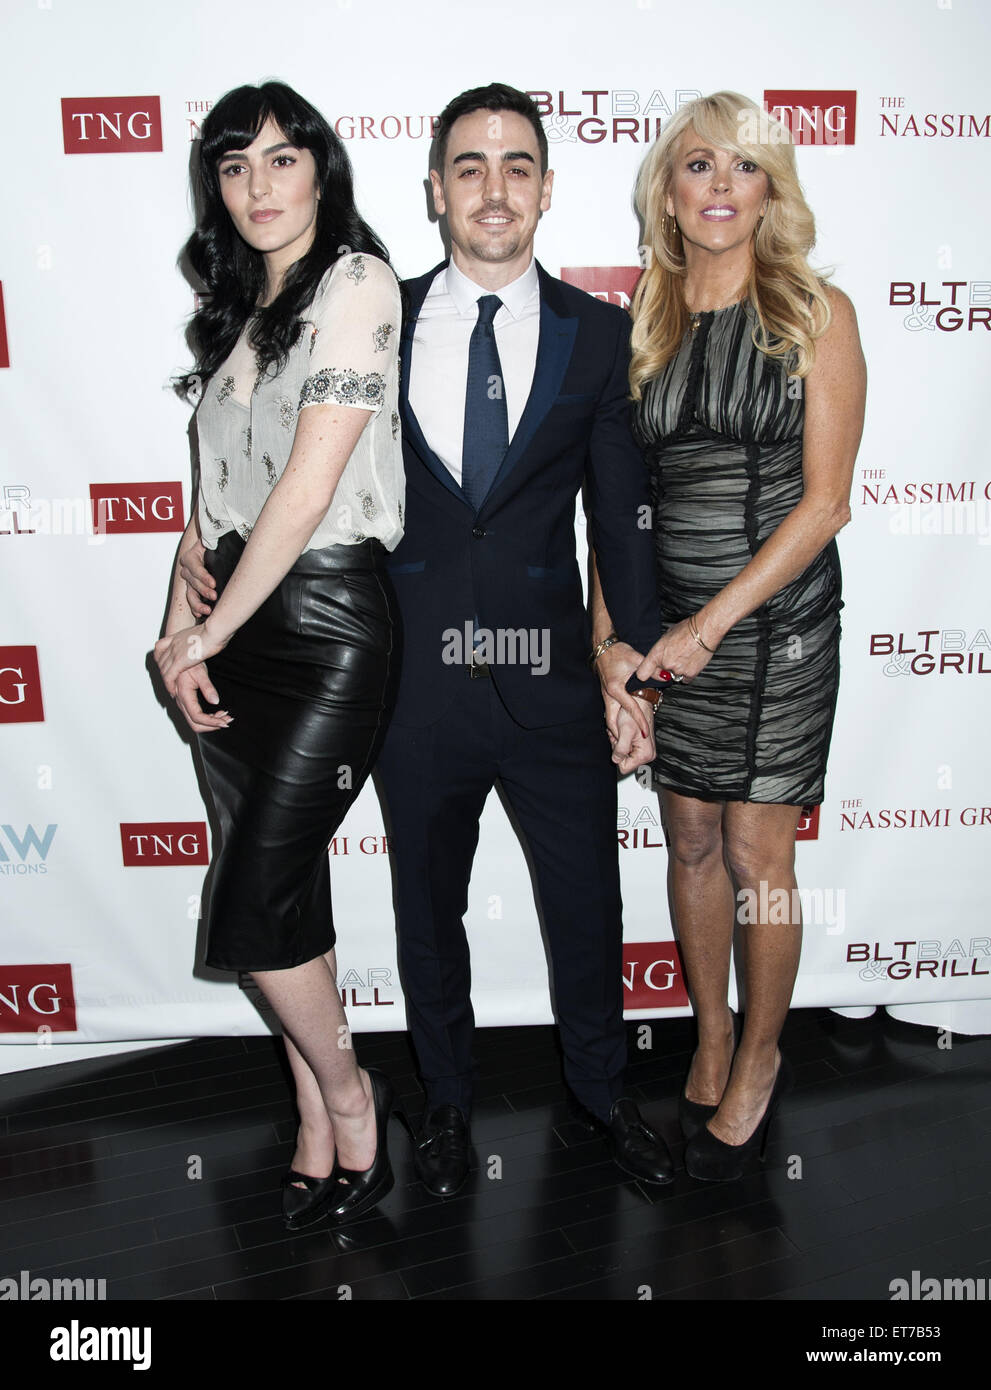 Nassimi Group Launch Party With The Lohan Family Featuring